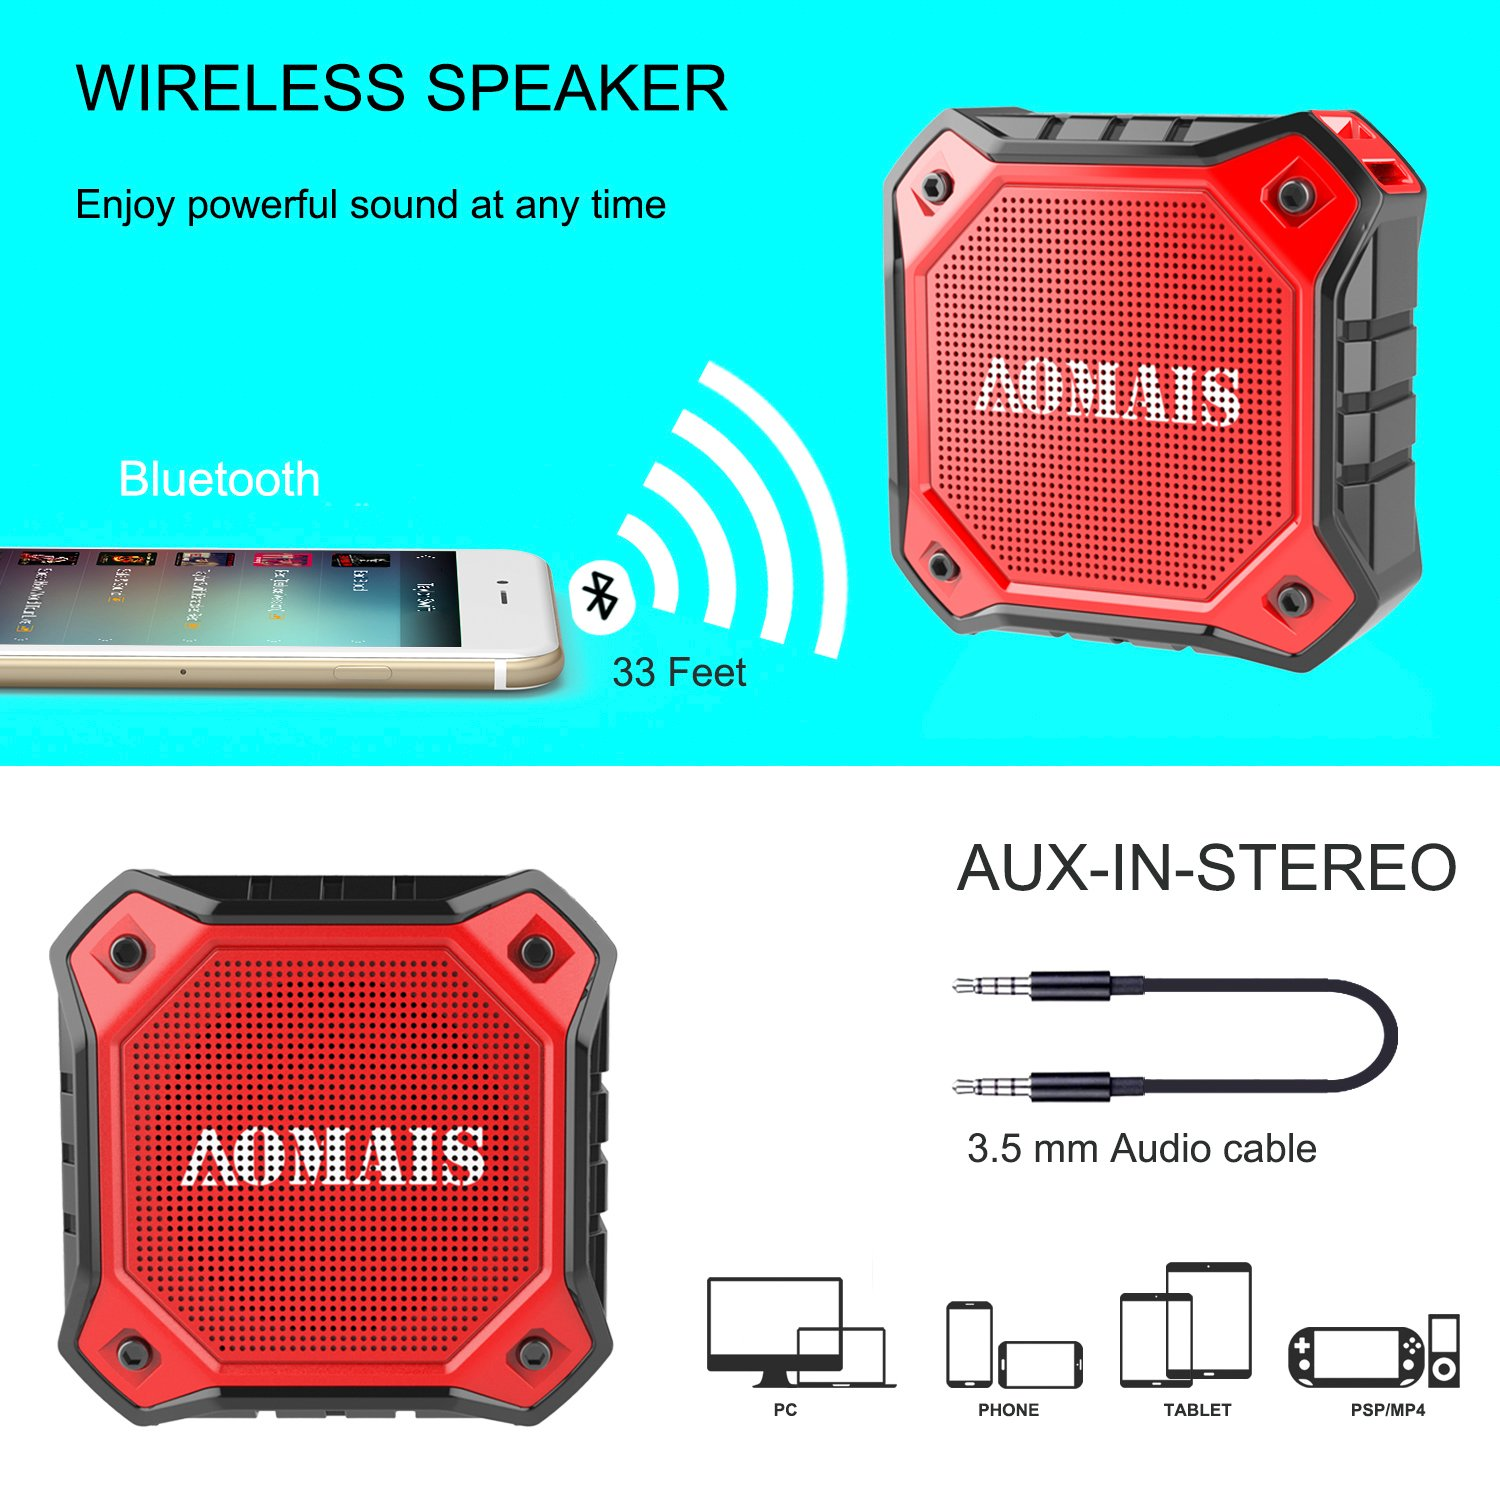 AOMAIS Ultra Portable Wireless Bluetooth Speakers 8W Loud Sound, Waterproof IPX7 Shower Speaker,Stereo Pairing Home Party, Outdoor, Beach, Travel (Red) by AOMAIS (Image #5)